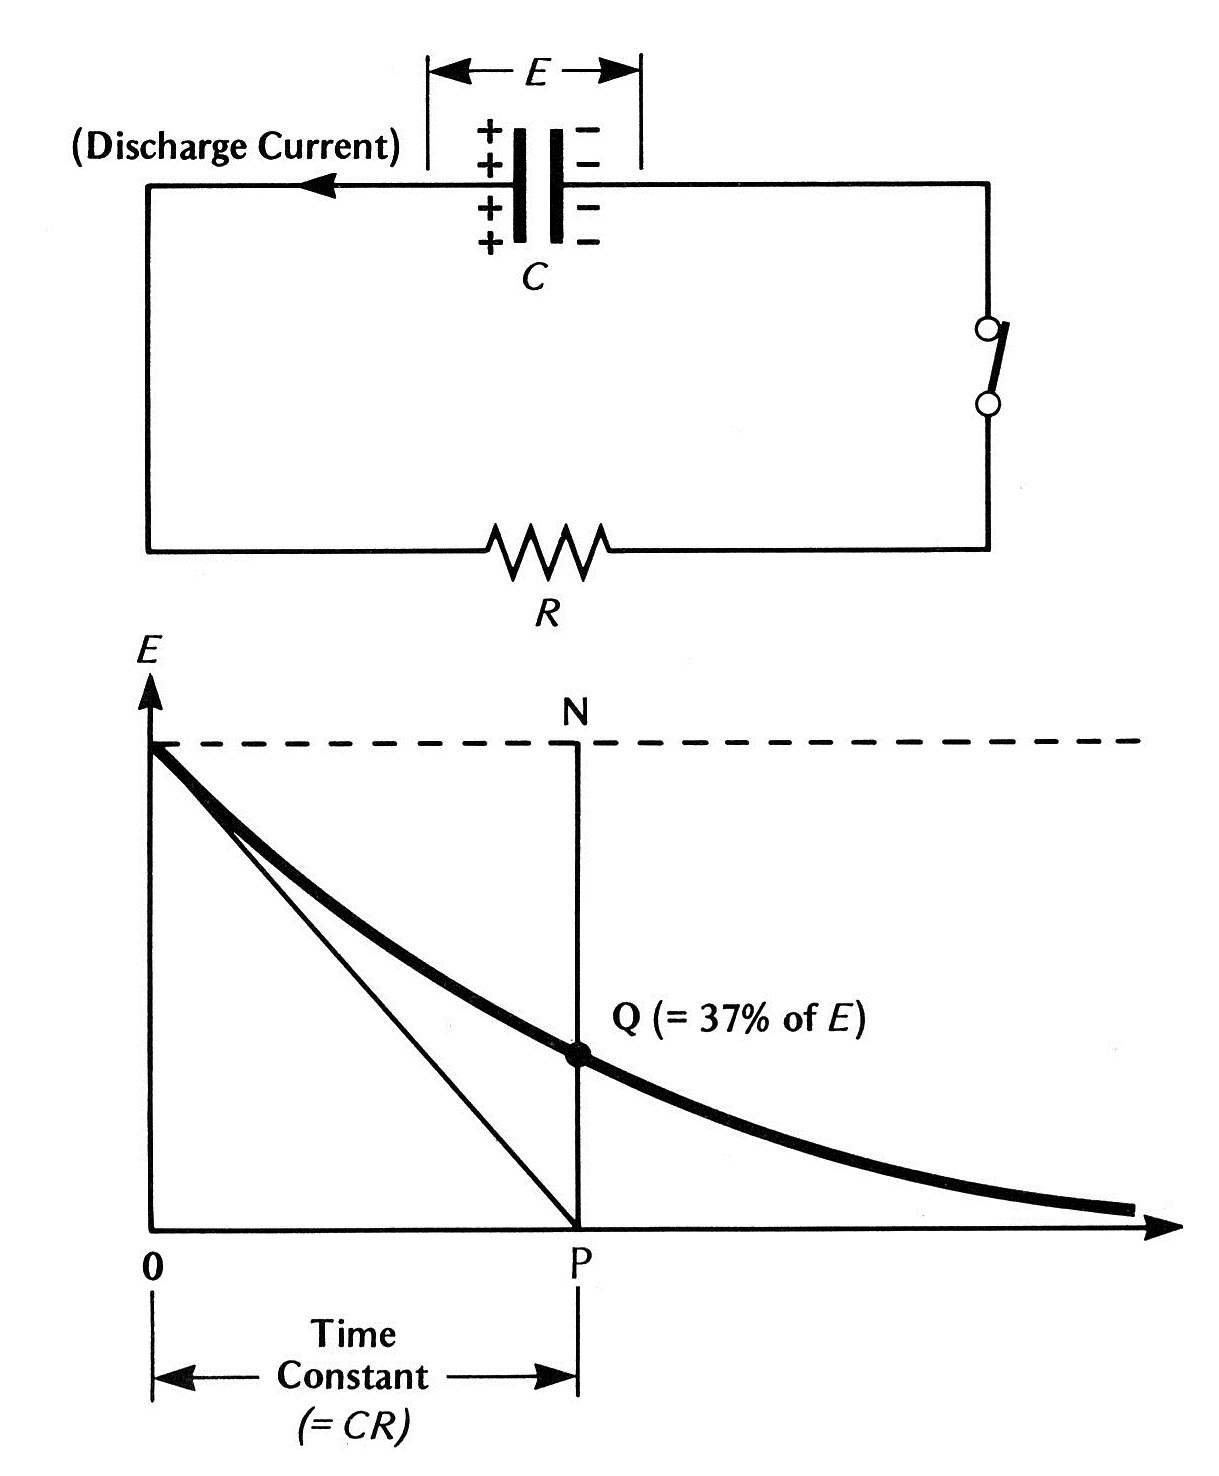 Engineering Photosvideos And Articels Search Engine Circuit Diagram Including A Battery Emf Capacitor C Resistor Chapter 9 Capacitance